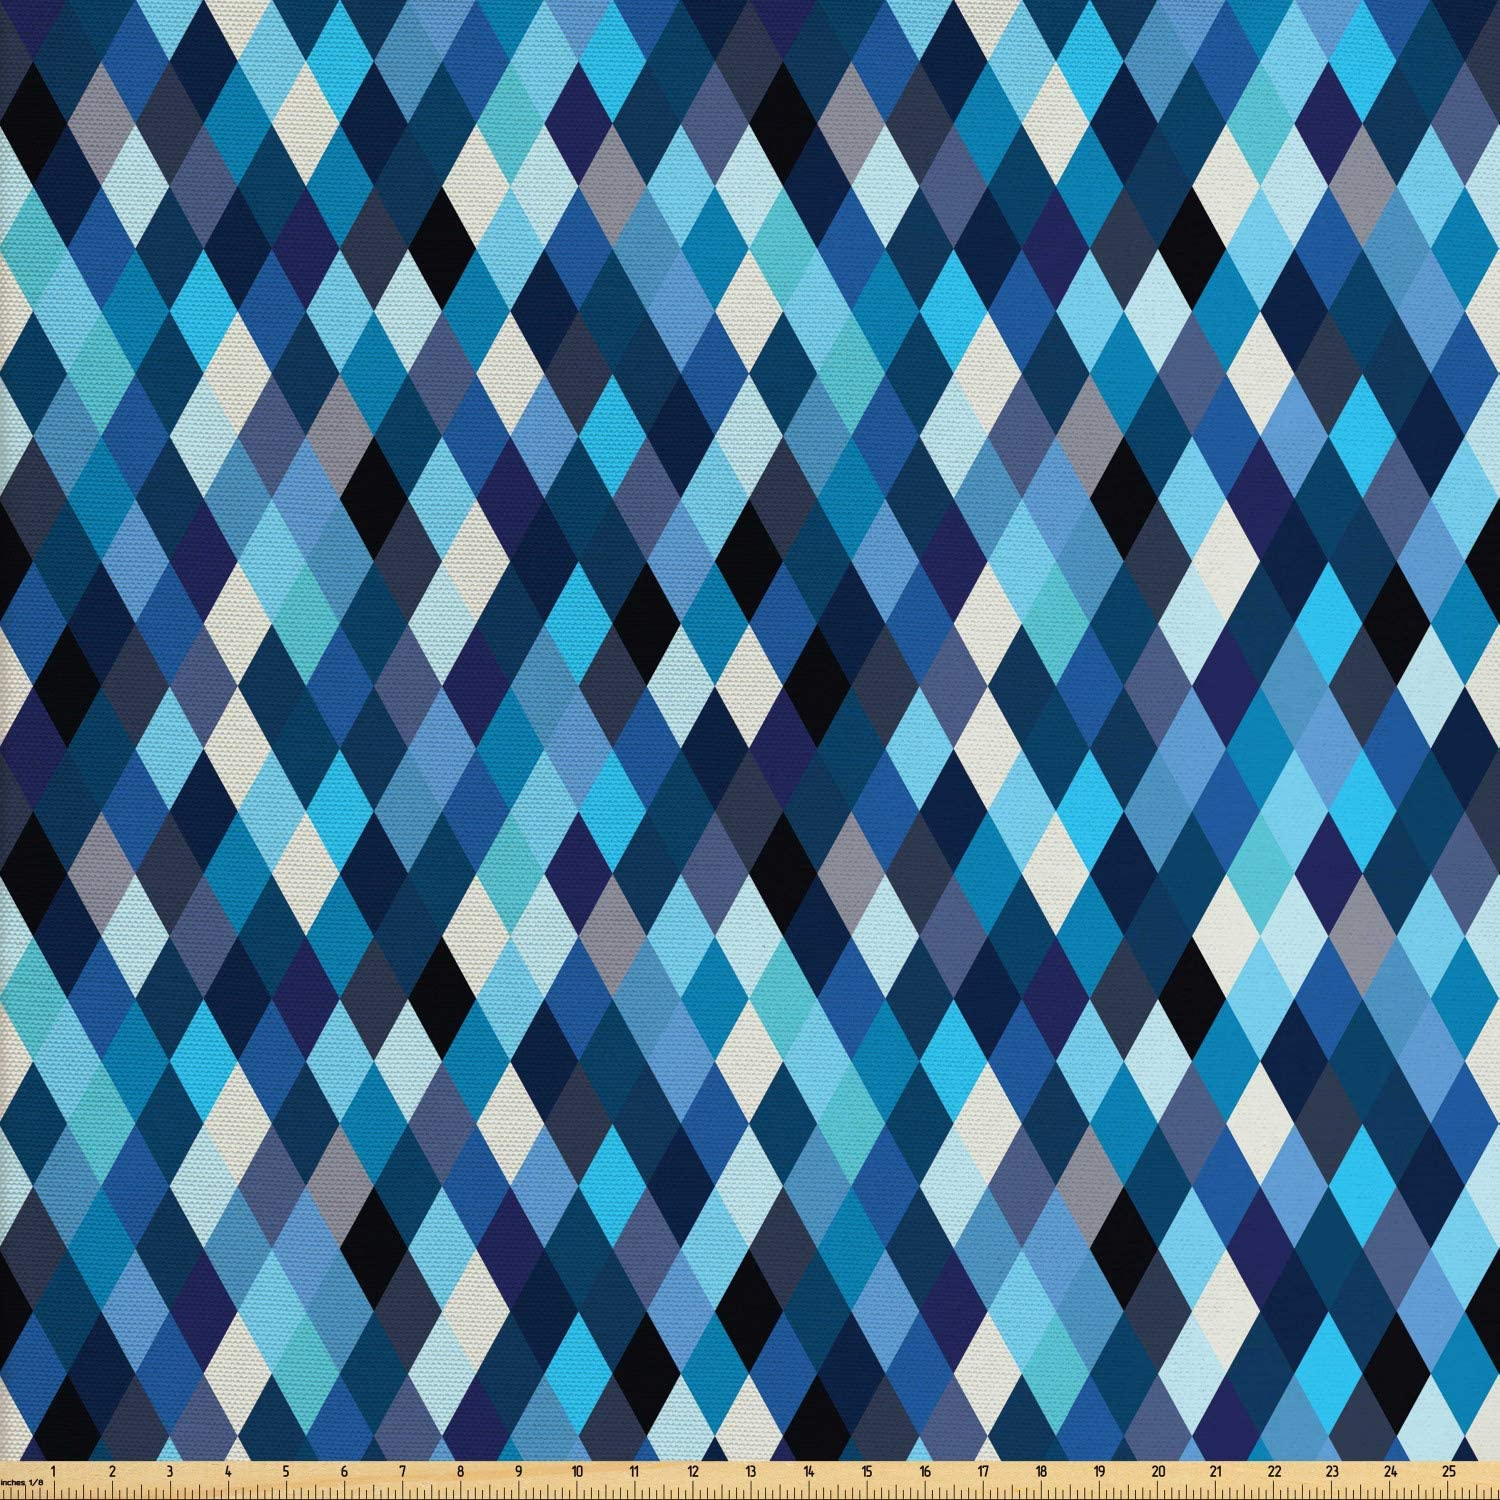 Ambesonne Modern Fabric by The Yard, Fashion Triangles Hexagons and Geometrical Shapes in Blue and White Colors Image, Decorative Fabric for Upholstery and Home Accents, 1 Yard, Multicolor